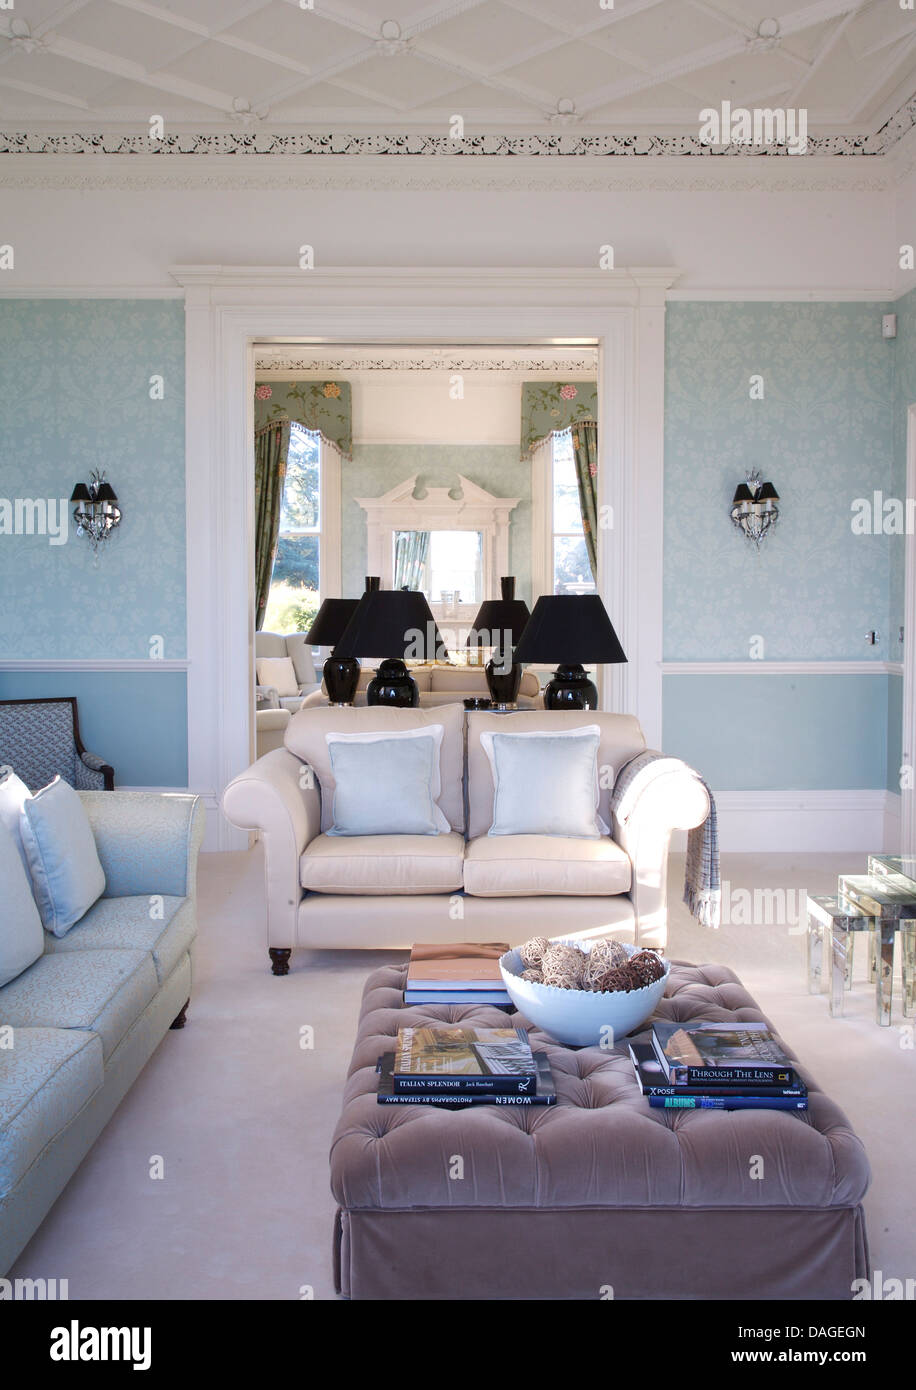 Outstanding Gray Velvet Ottoman And White Sofas And Carpet In Pale Blue Machost Co Dining Chair Design Ideas Machostcouk